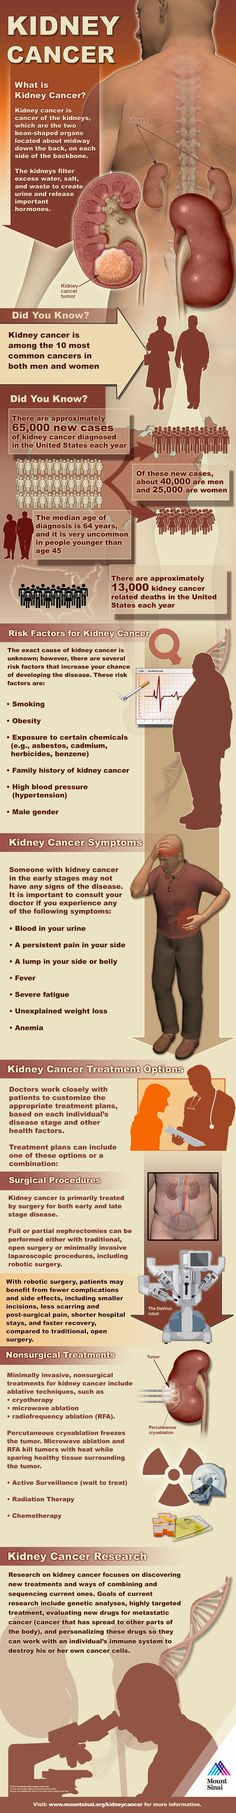 Today's infographic comes from Mt. Sinai Hospital and covers the facts and statics on kidney cancer, This cancer is more common in men and is very uncommon under the age of 45. With healthy lifestyle choices such as maintaining a healthy weight and not smoking you can reduce your risk for this cancer and many other diseases.